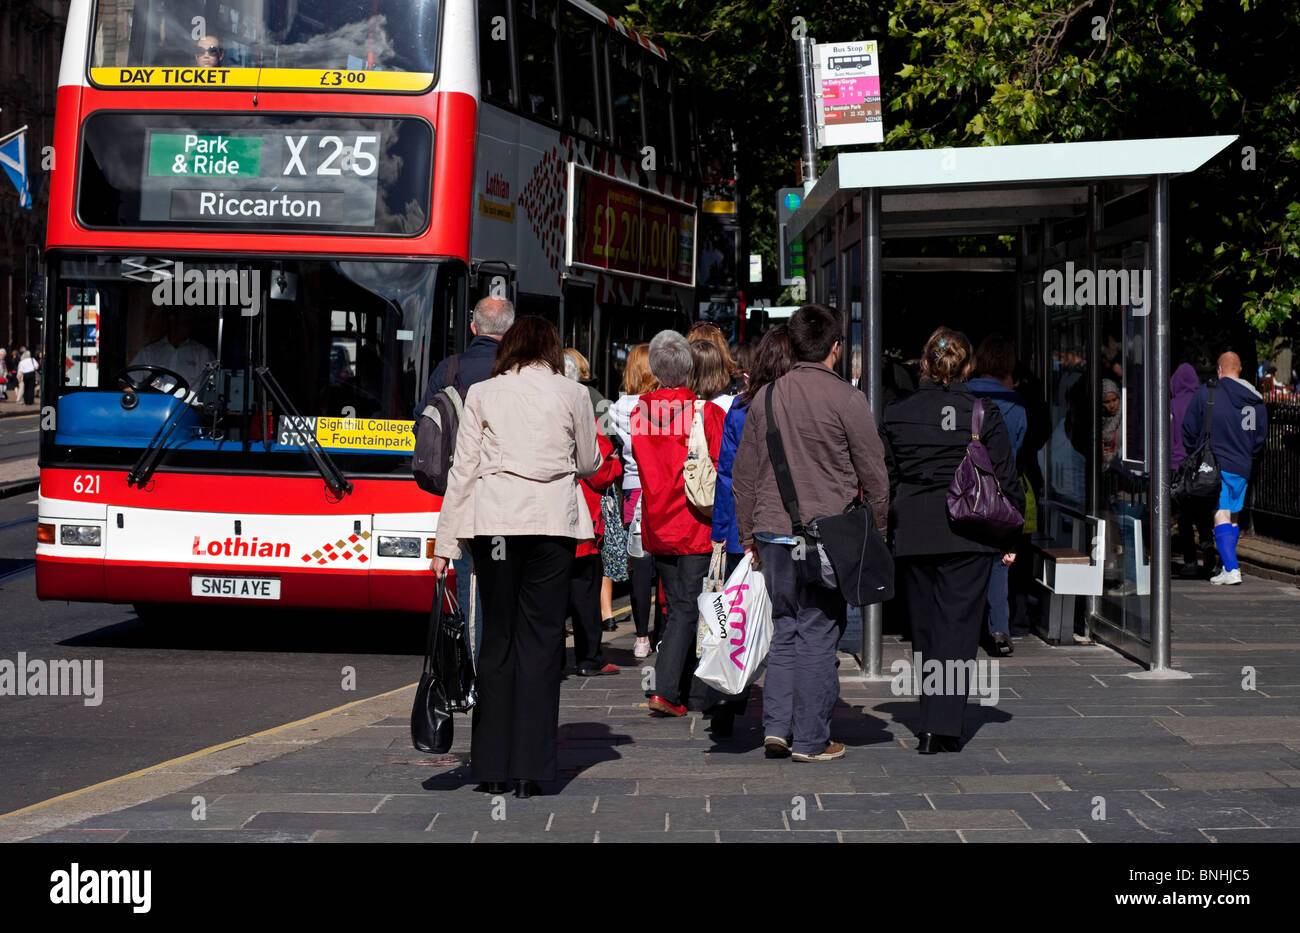 Princes Street Edinburgh Bus Stop High Resolution Stock Photography And Images Alamy